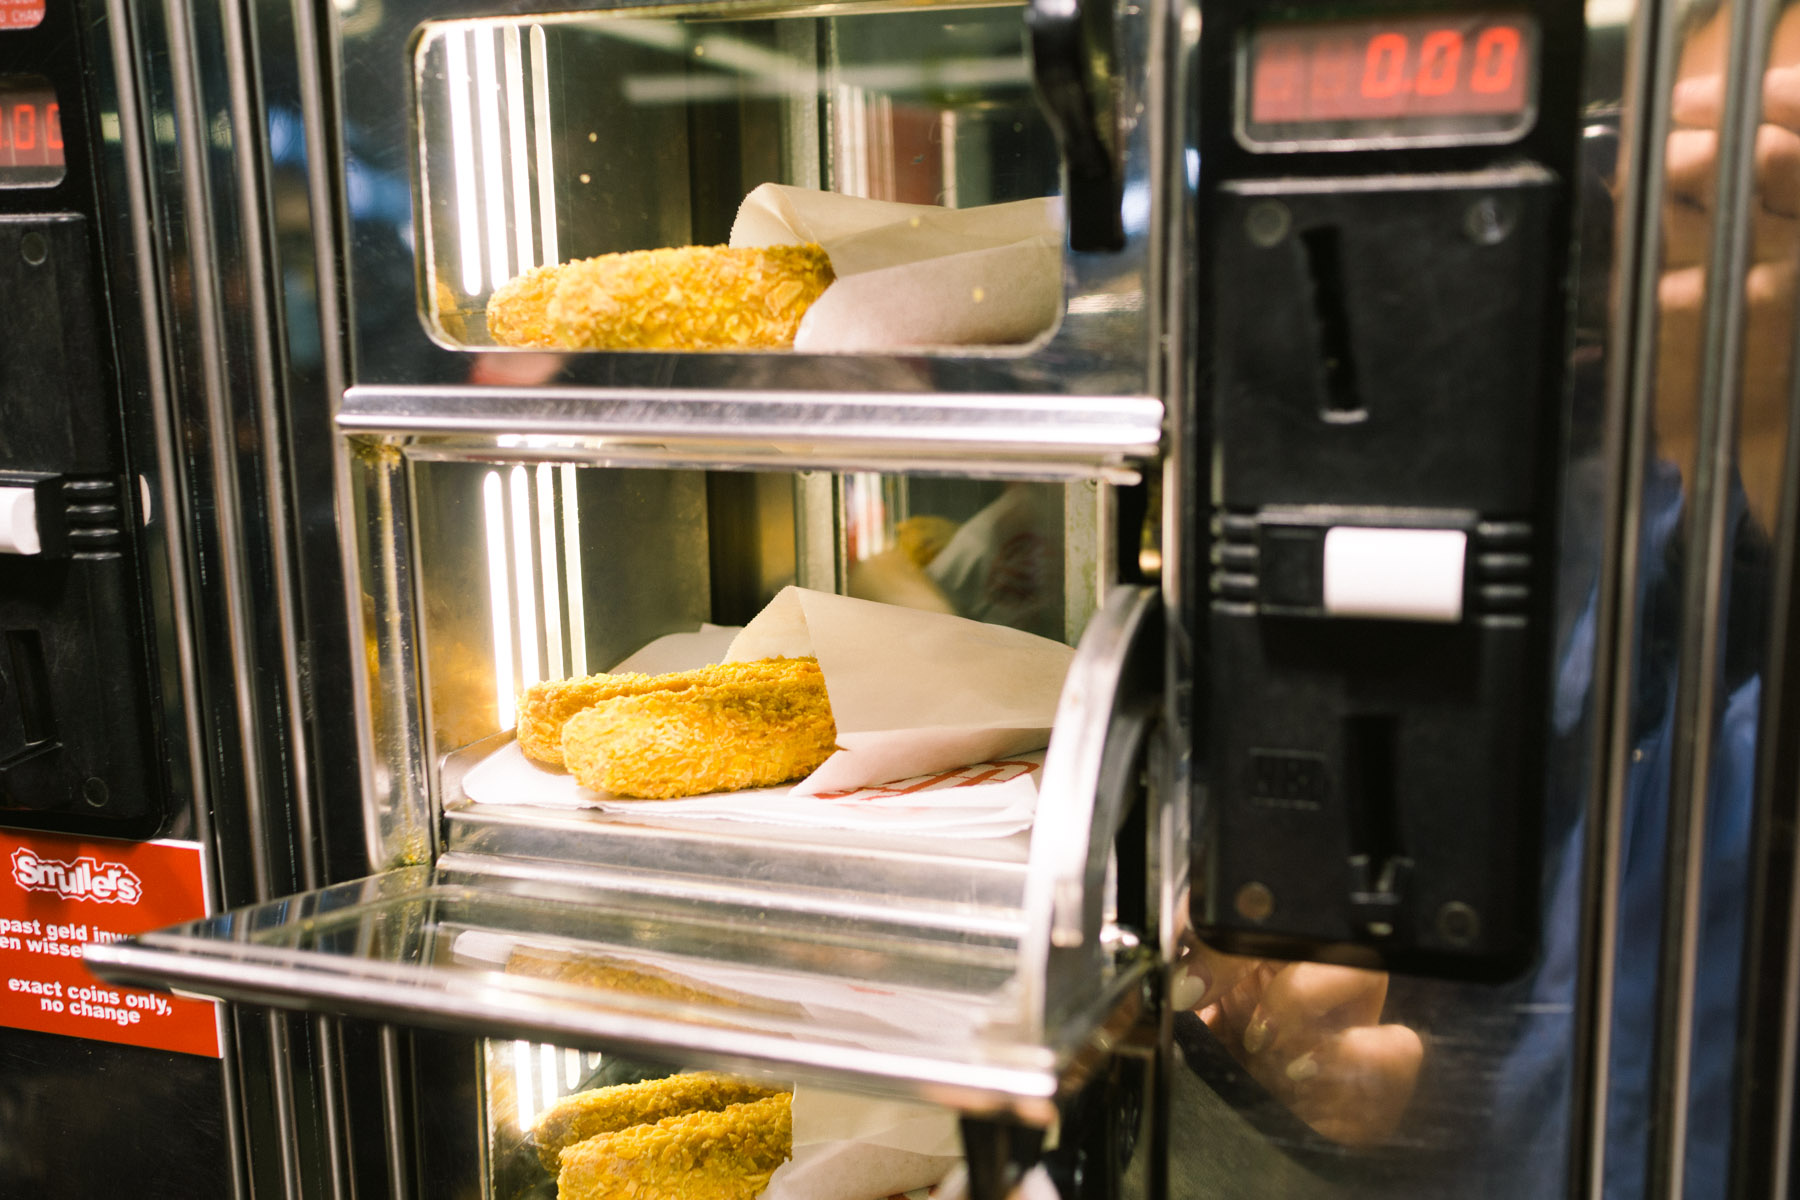 amsterdam-smullers-febo-fast-food-vending-machine-automatiek-croquette-burger-fries-5